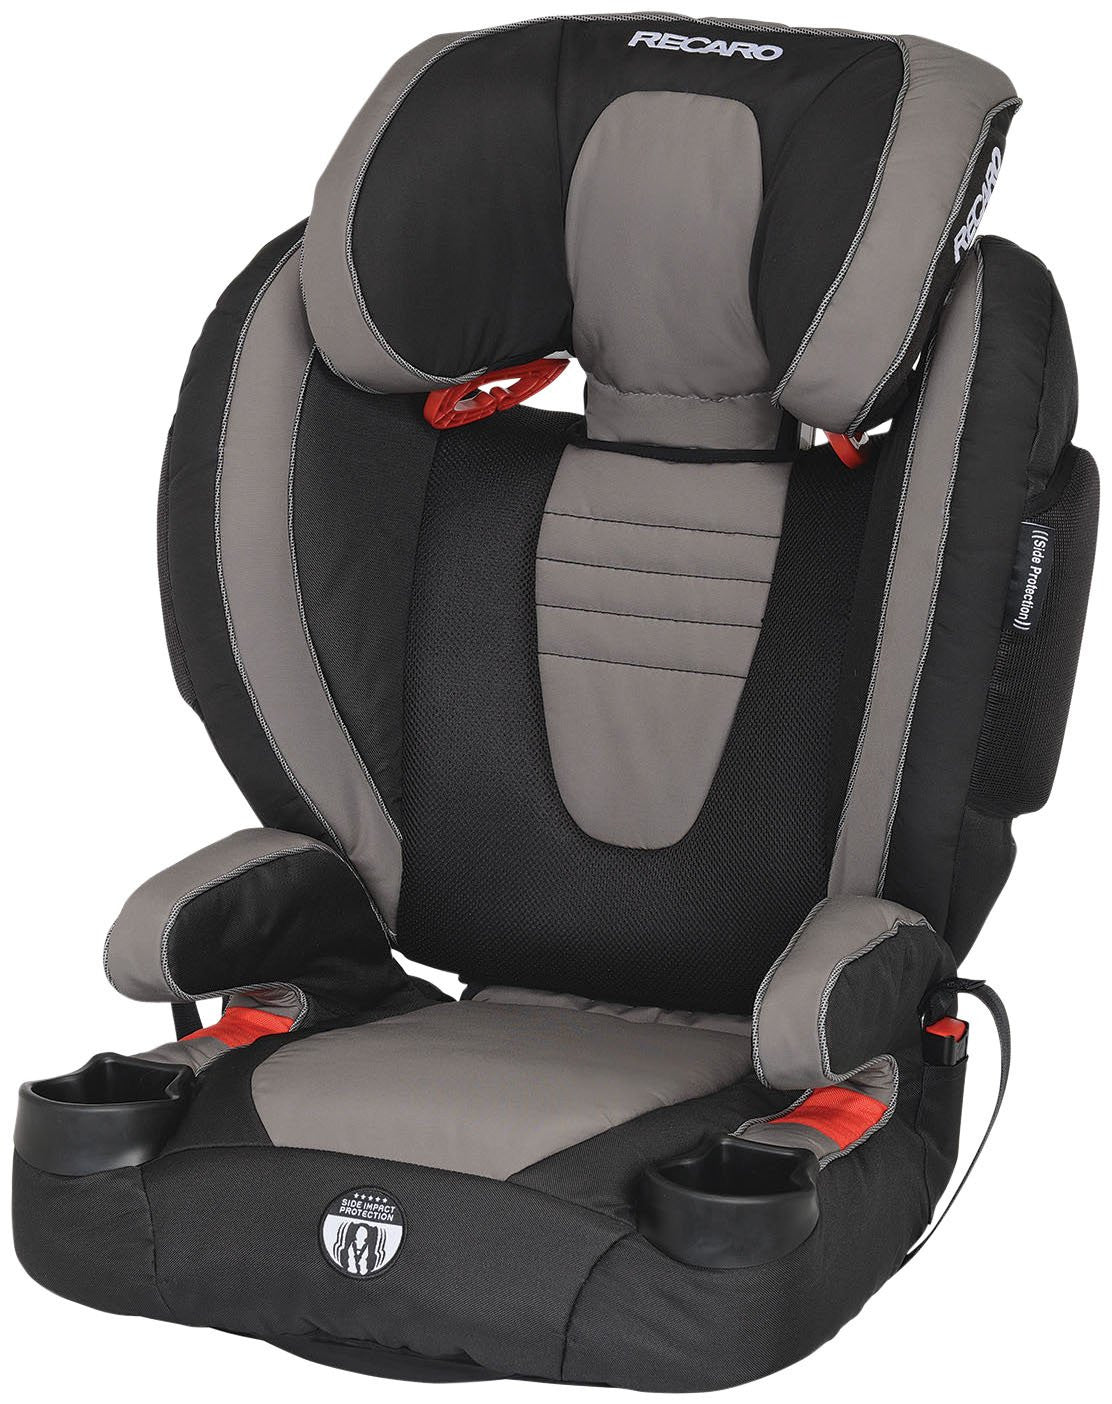 Recaro Booster Seat with Back